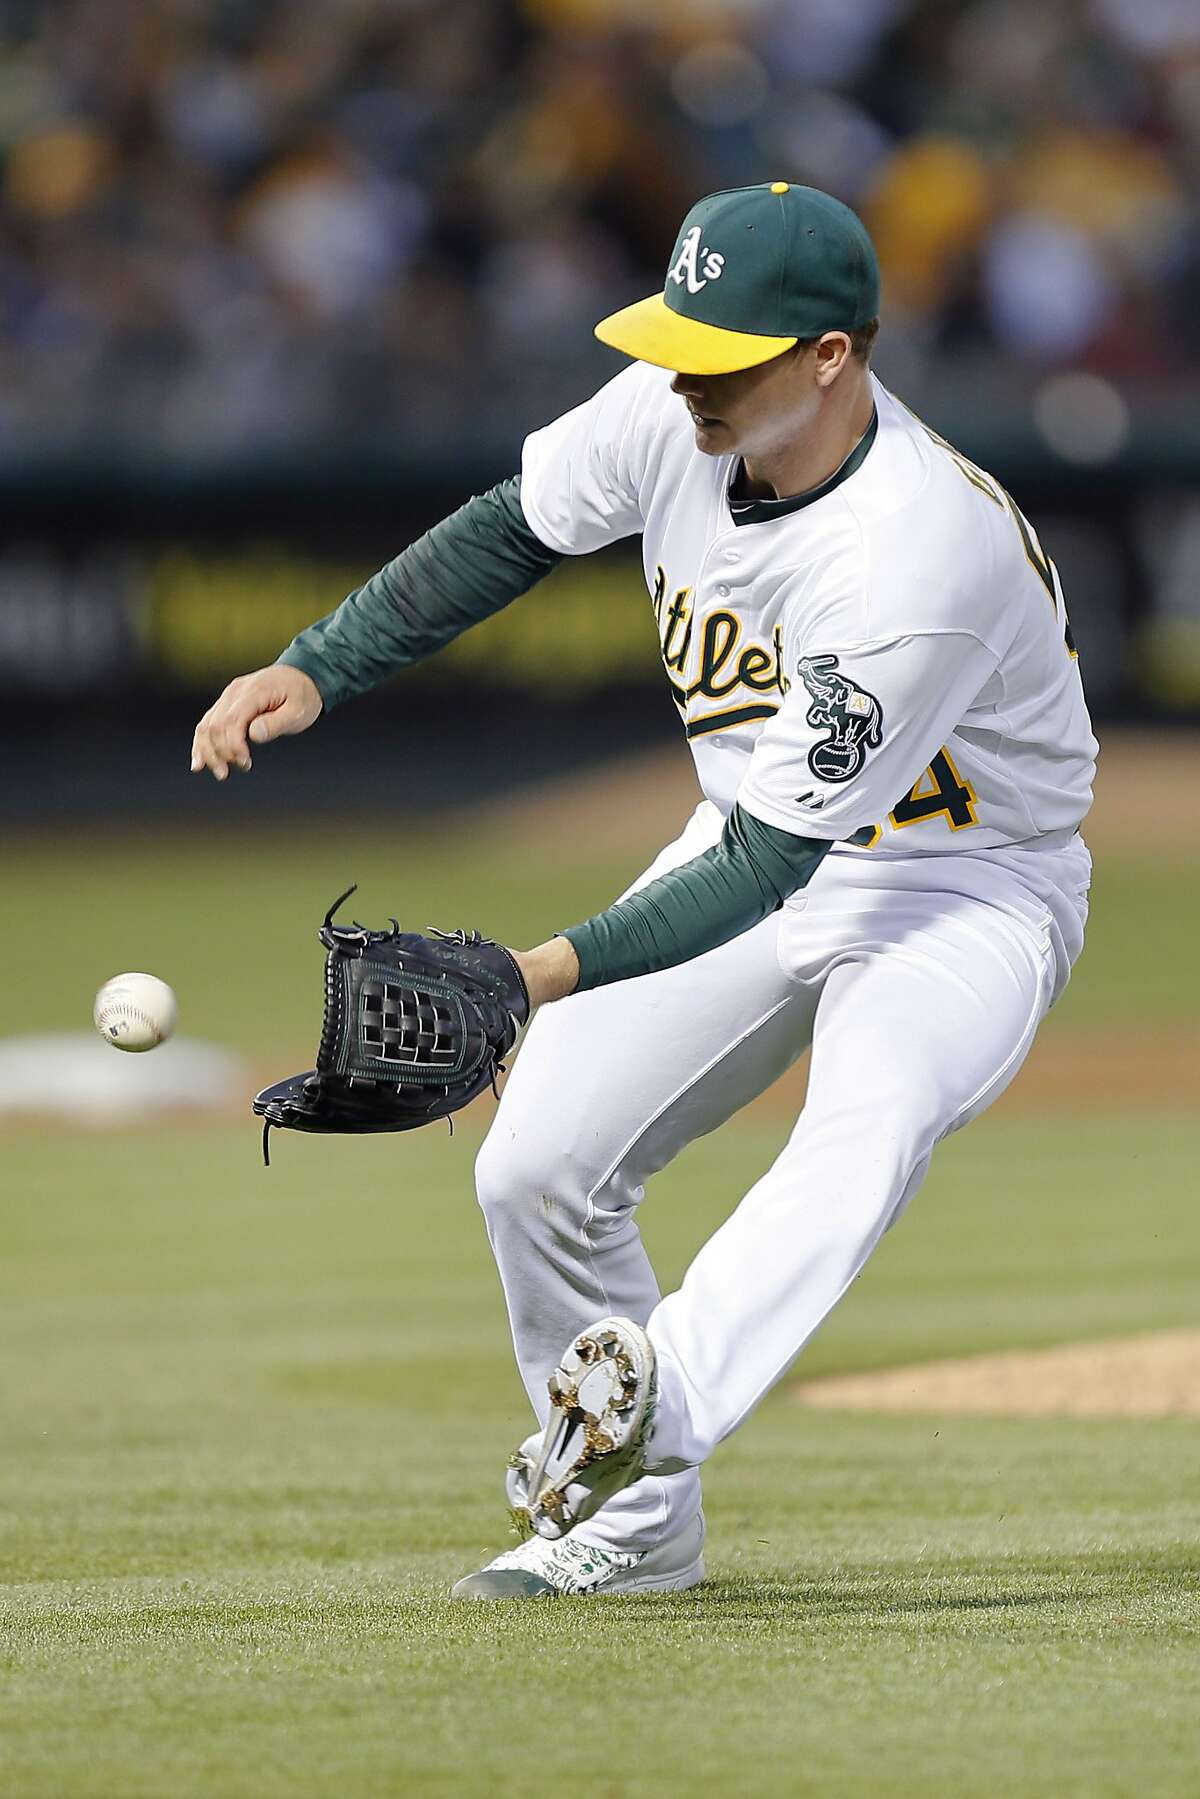 OAKLAND, CA - JUNE 19: Starting pitcher Sonny Gray #54 of the Oakland Athletics stops a ground ball to put out Albert Pujols of the Los Angeles Angels of Anaheim in the sixth inning at O.co Coliseum on June 19, 2015 in Oakland, California. The Angels won 12-7. (Photo by Brian Bahr/Getty Images)